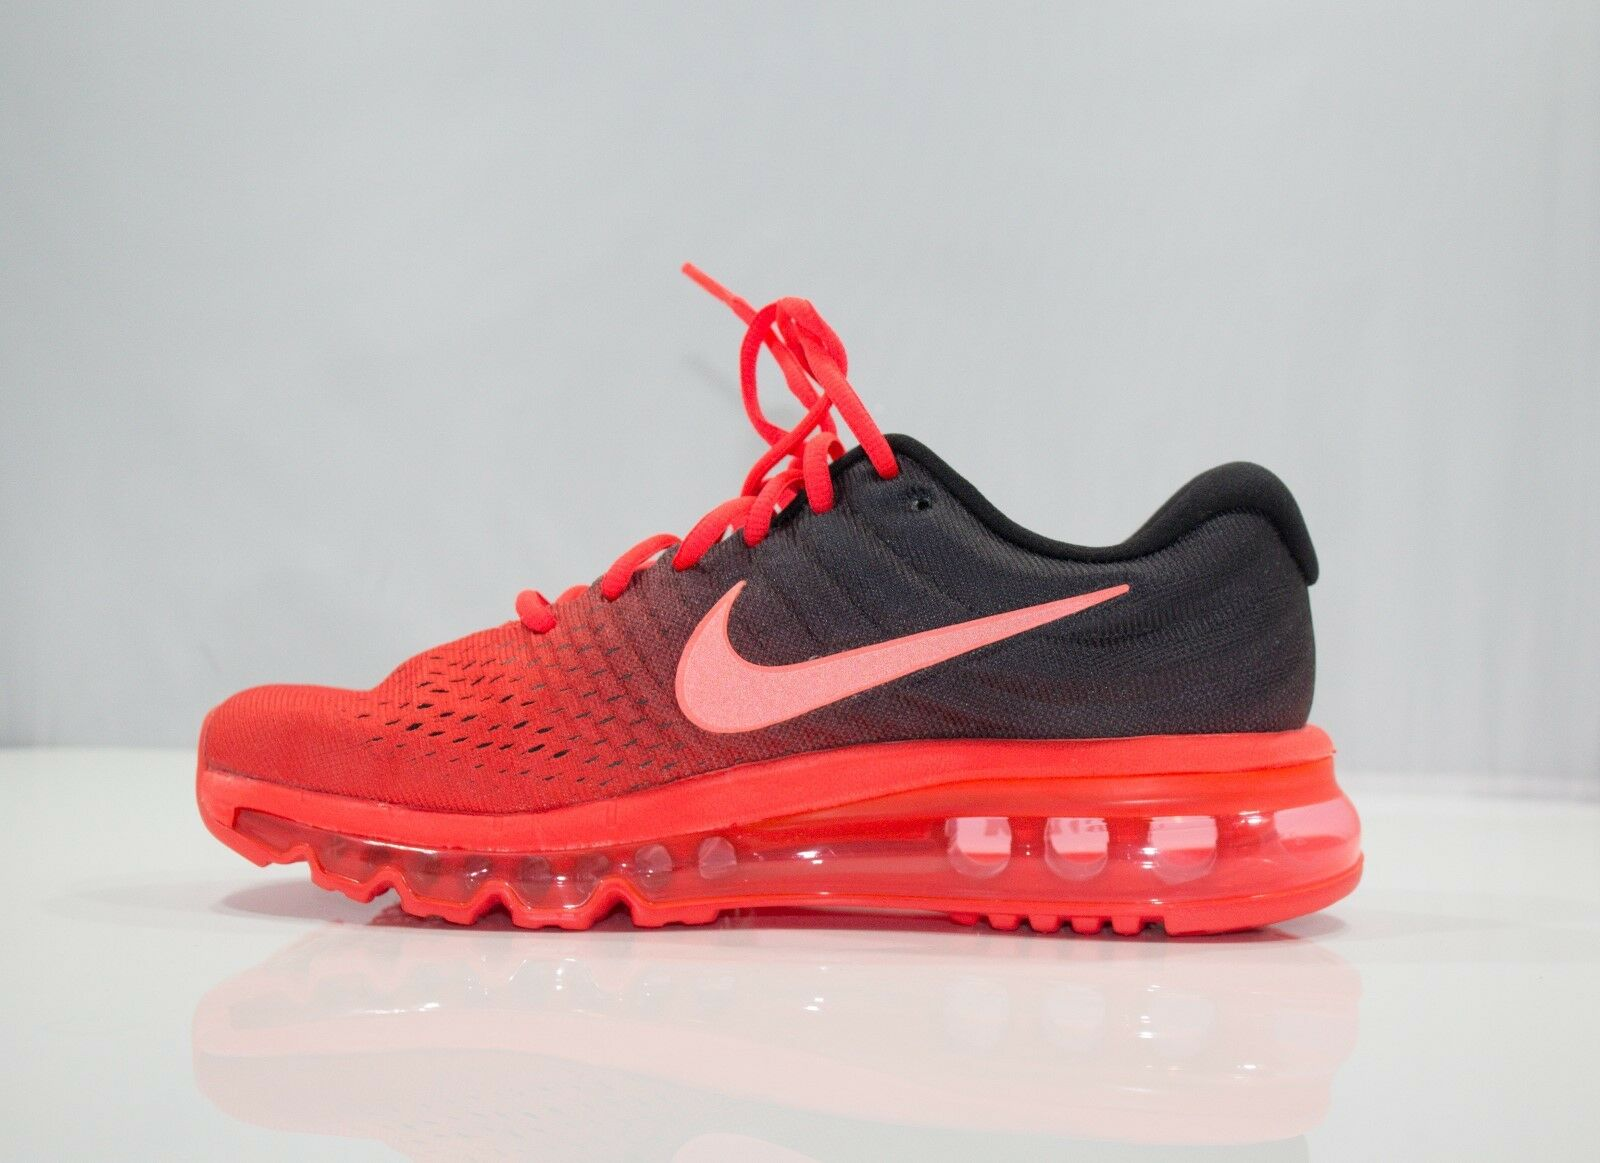 Nike Air Max 2017 849559 600 Size 6.5 US Fast Free Shiping REAL PICTURES